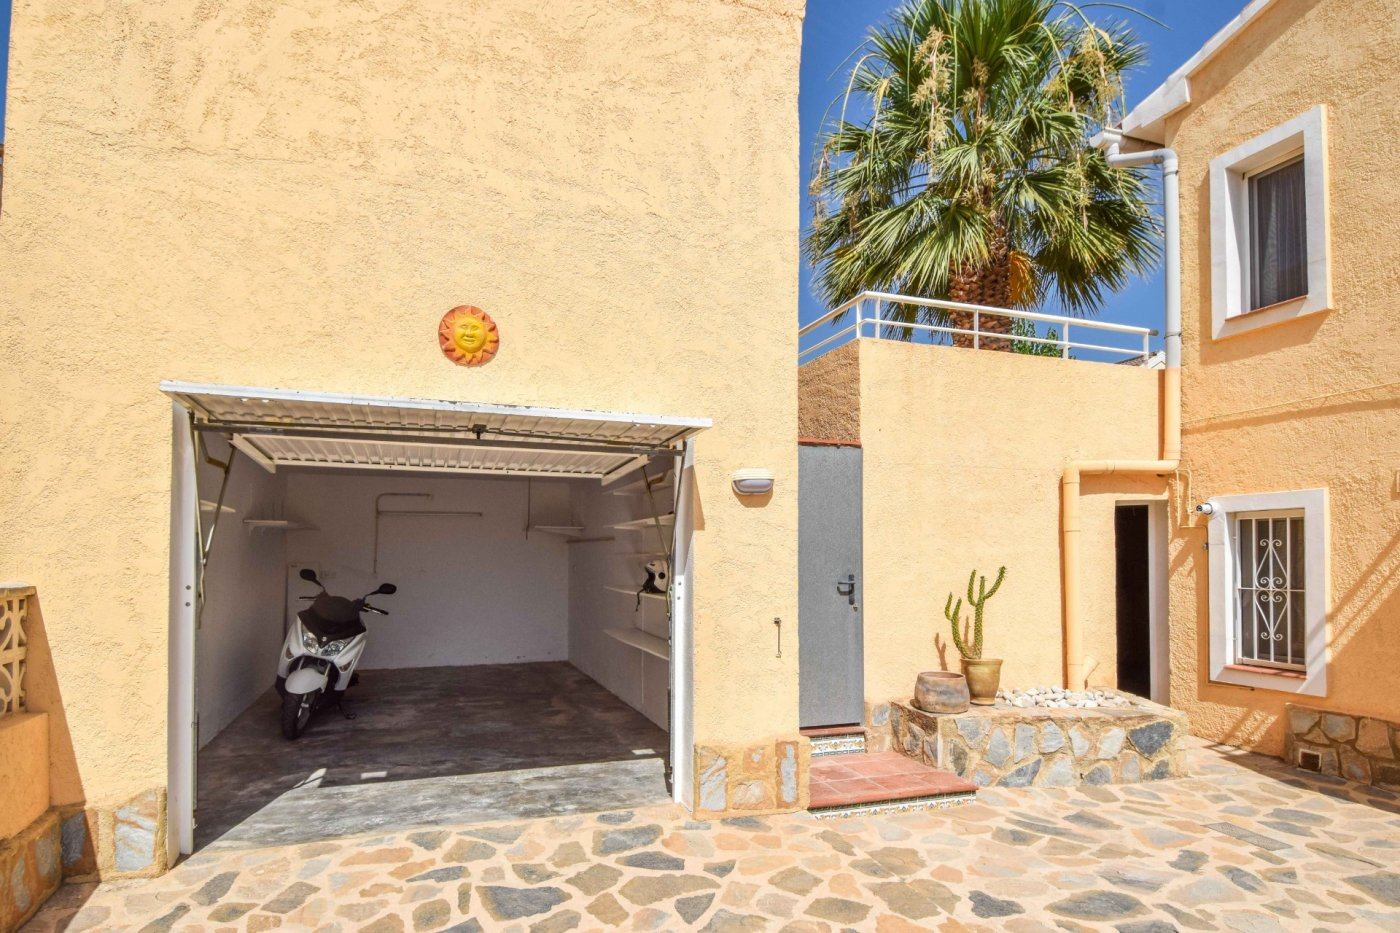 Villa - Ready To Move And Live - La Nucia - La Nucia